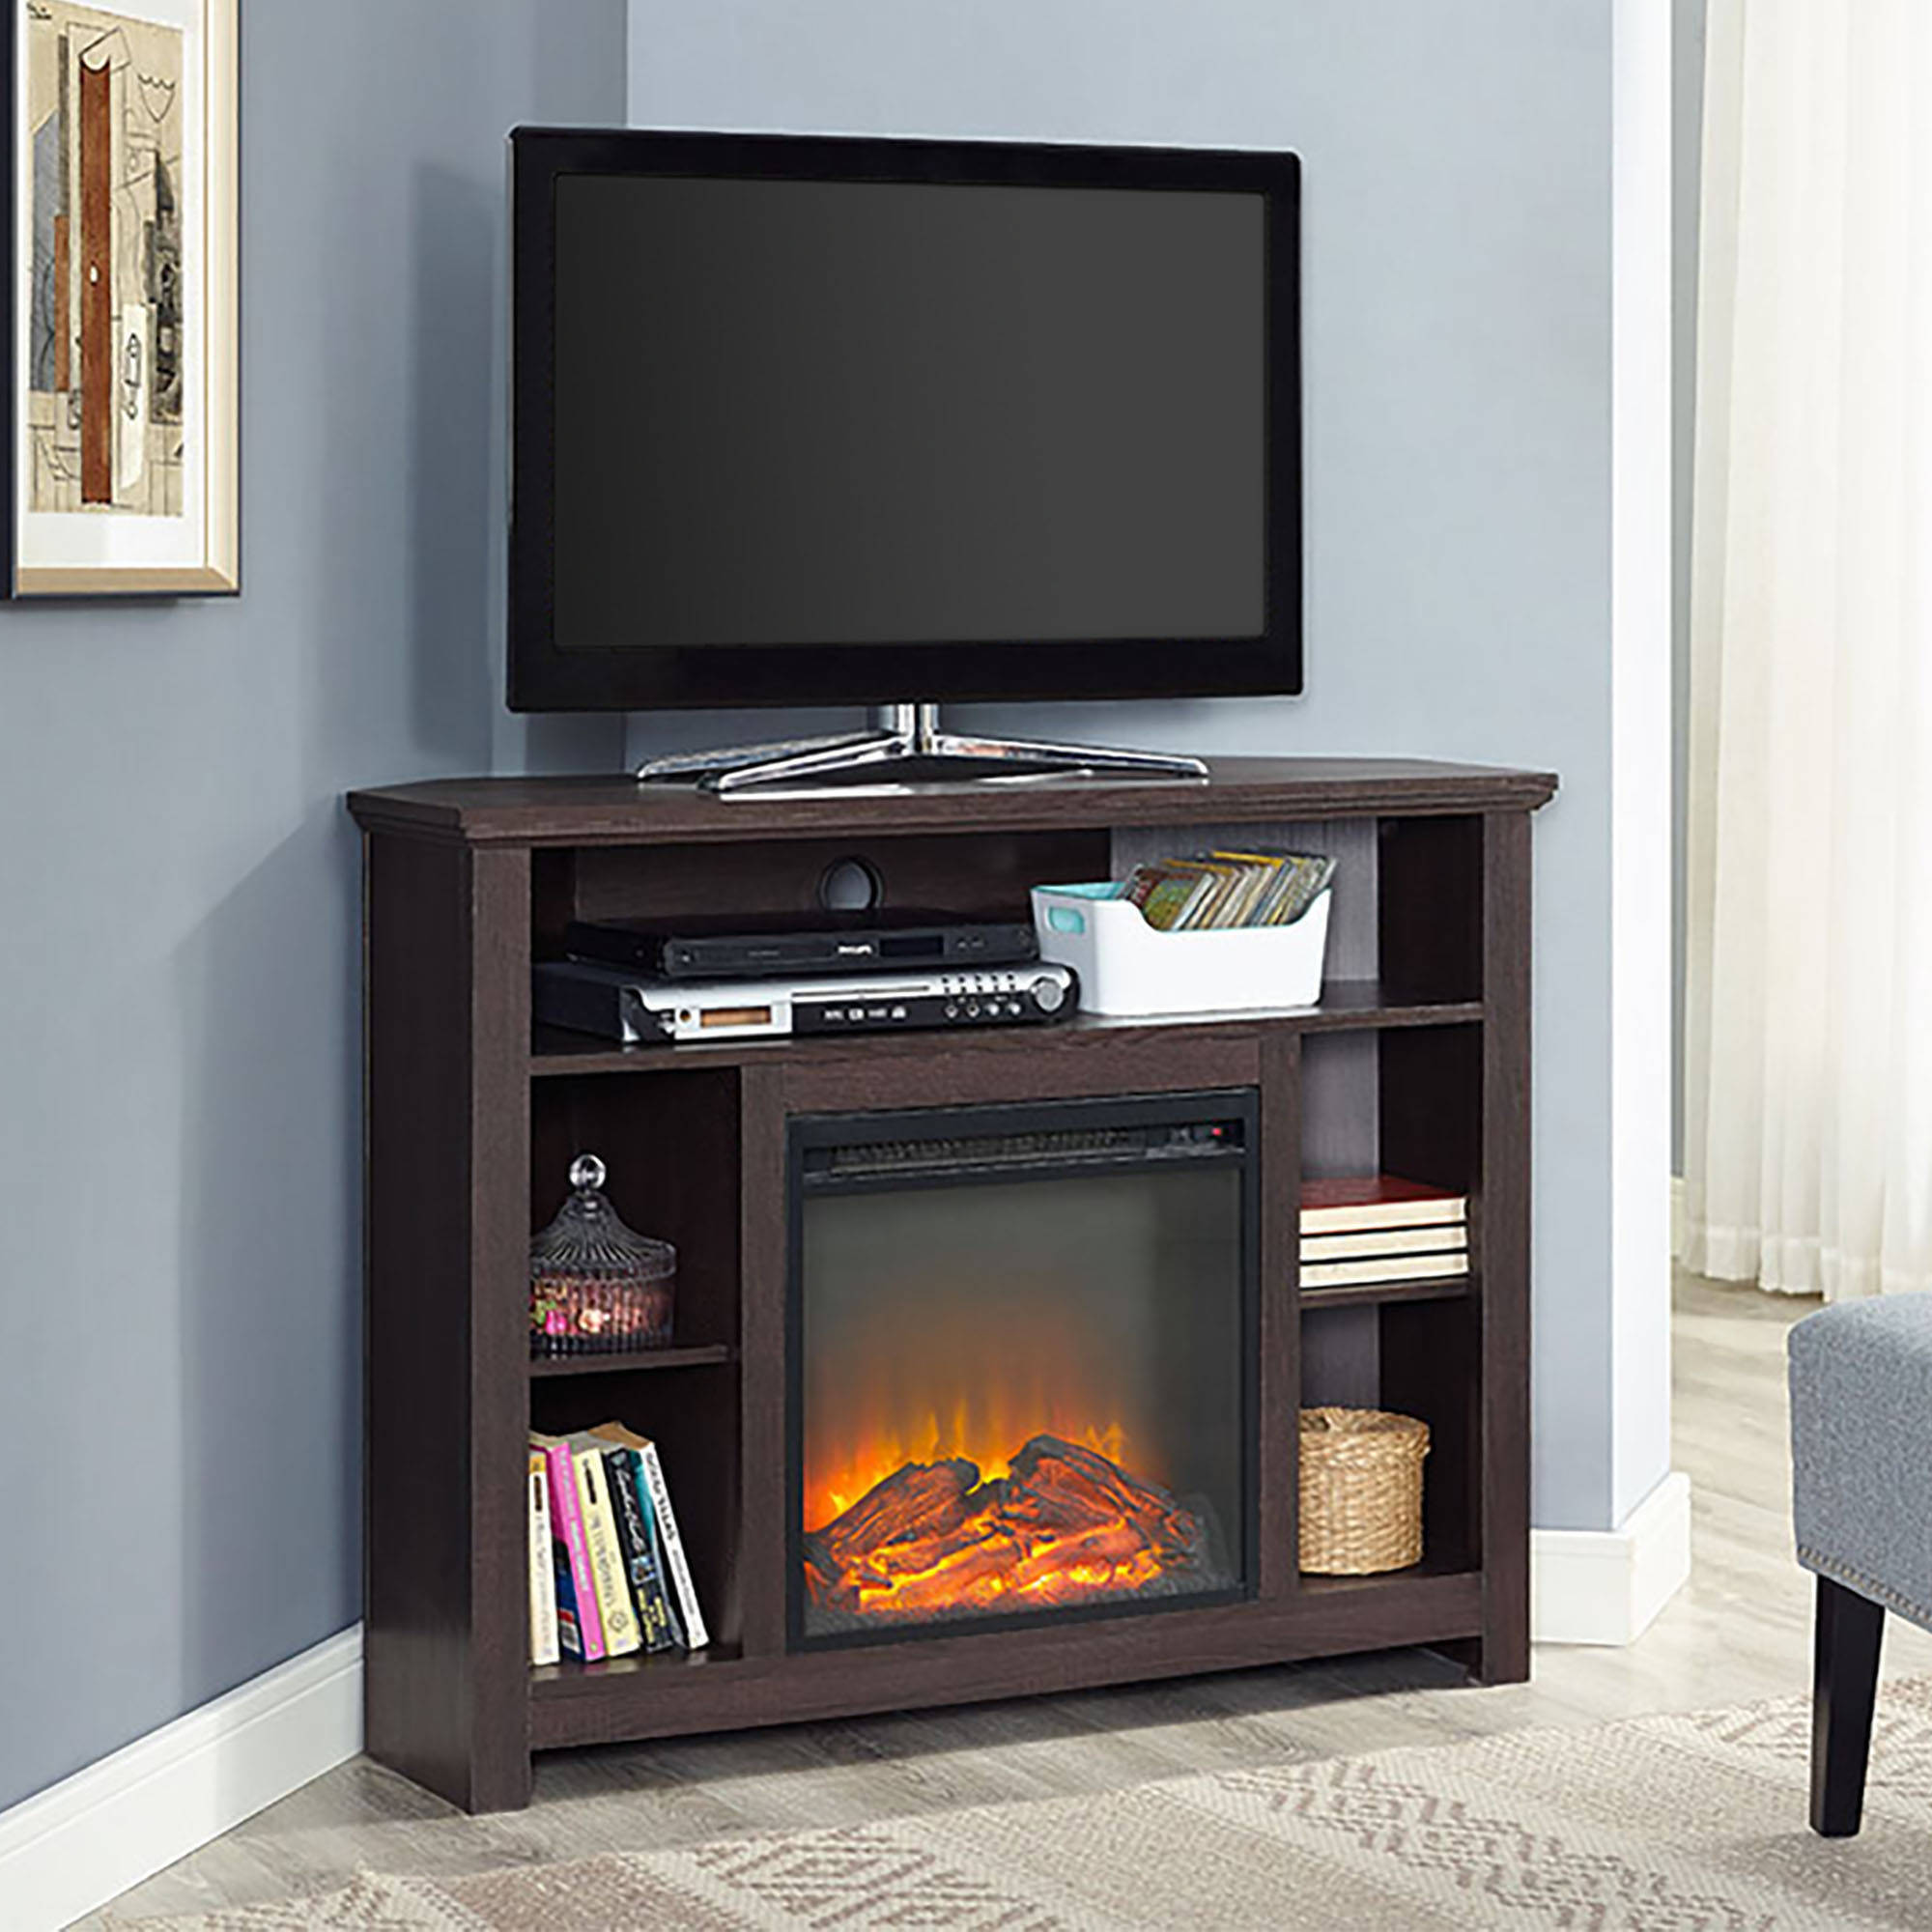 44 Wood Corner Tall Fireplace TV Stand For TVs Up To 60